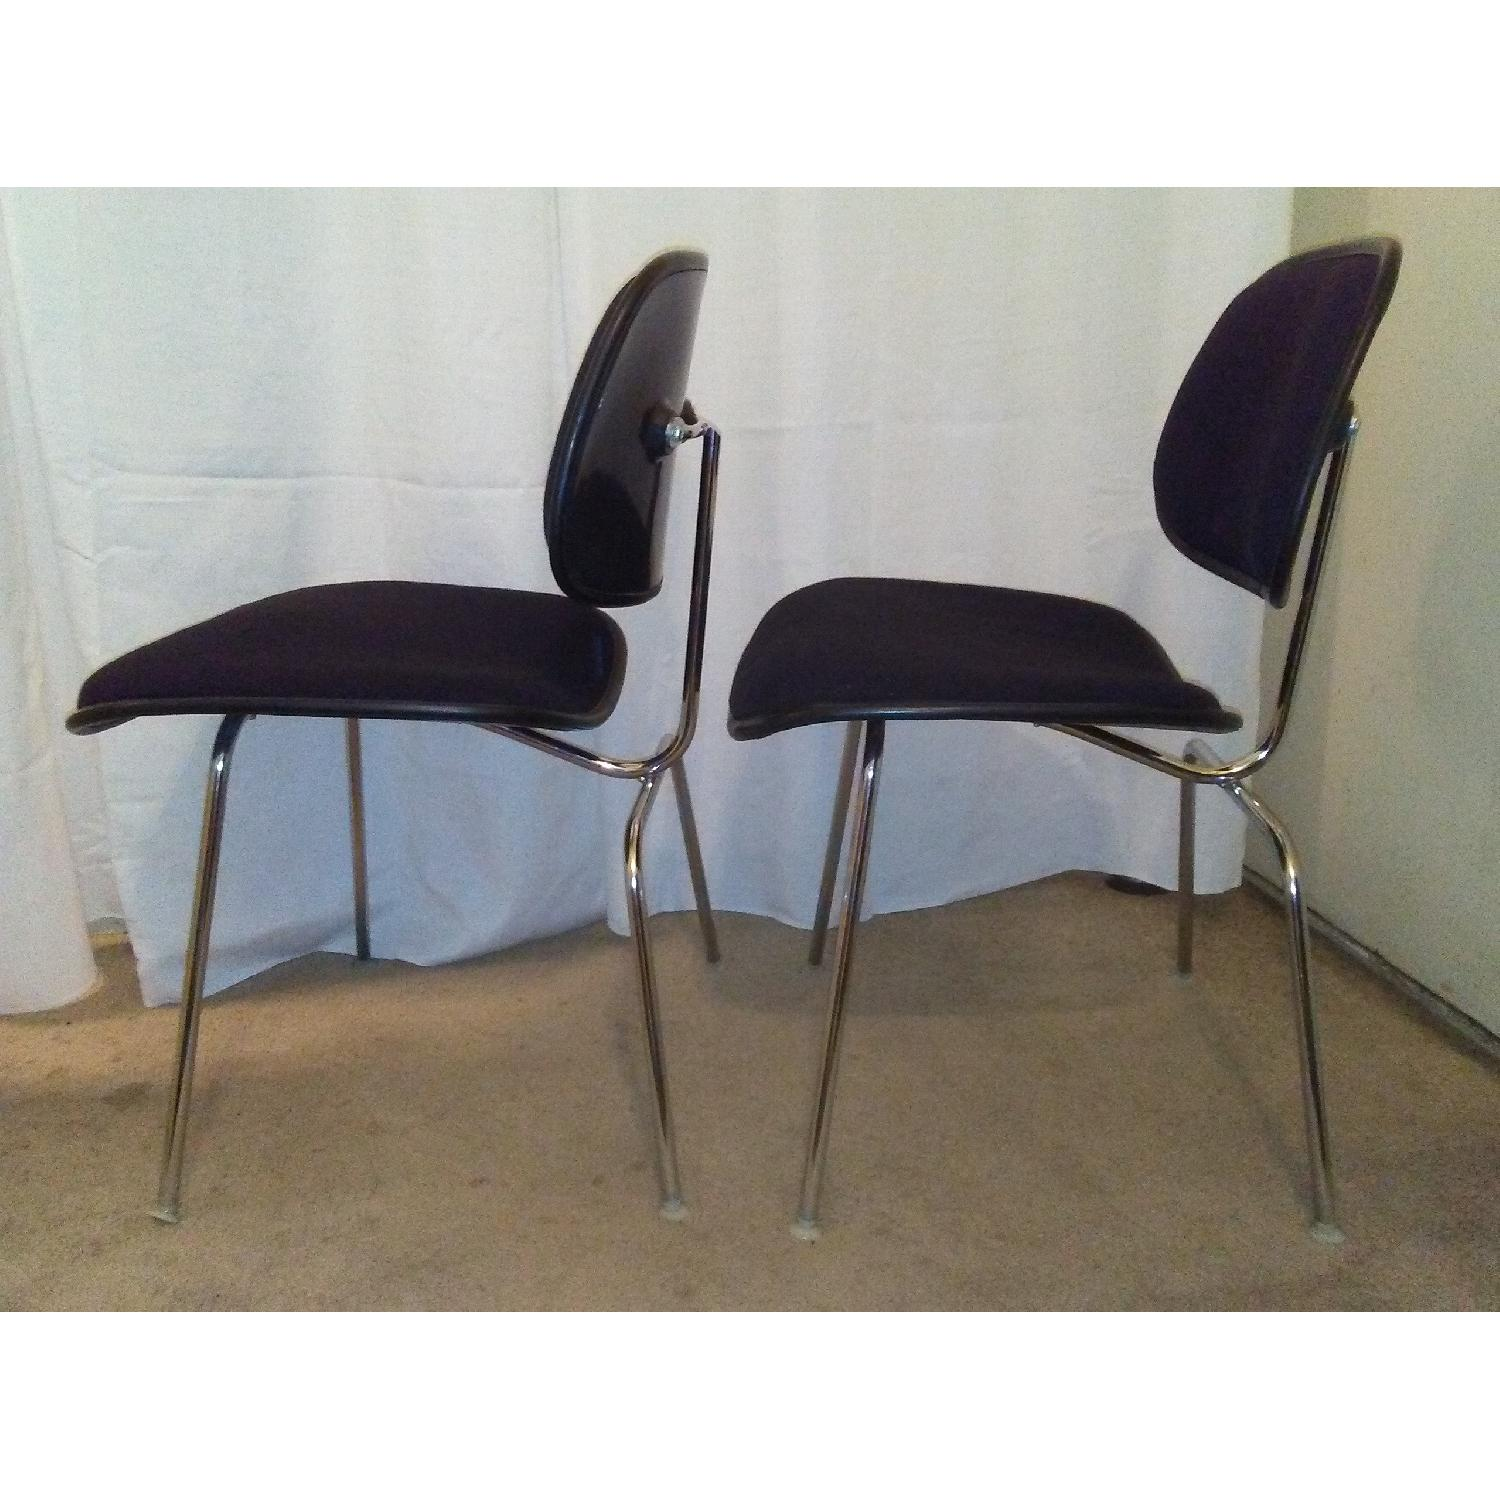 Herman Miller c.1992 Charles Eames Dining/Accent Chairs - image-6